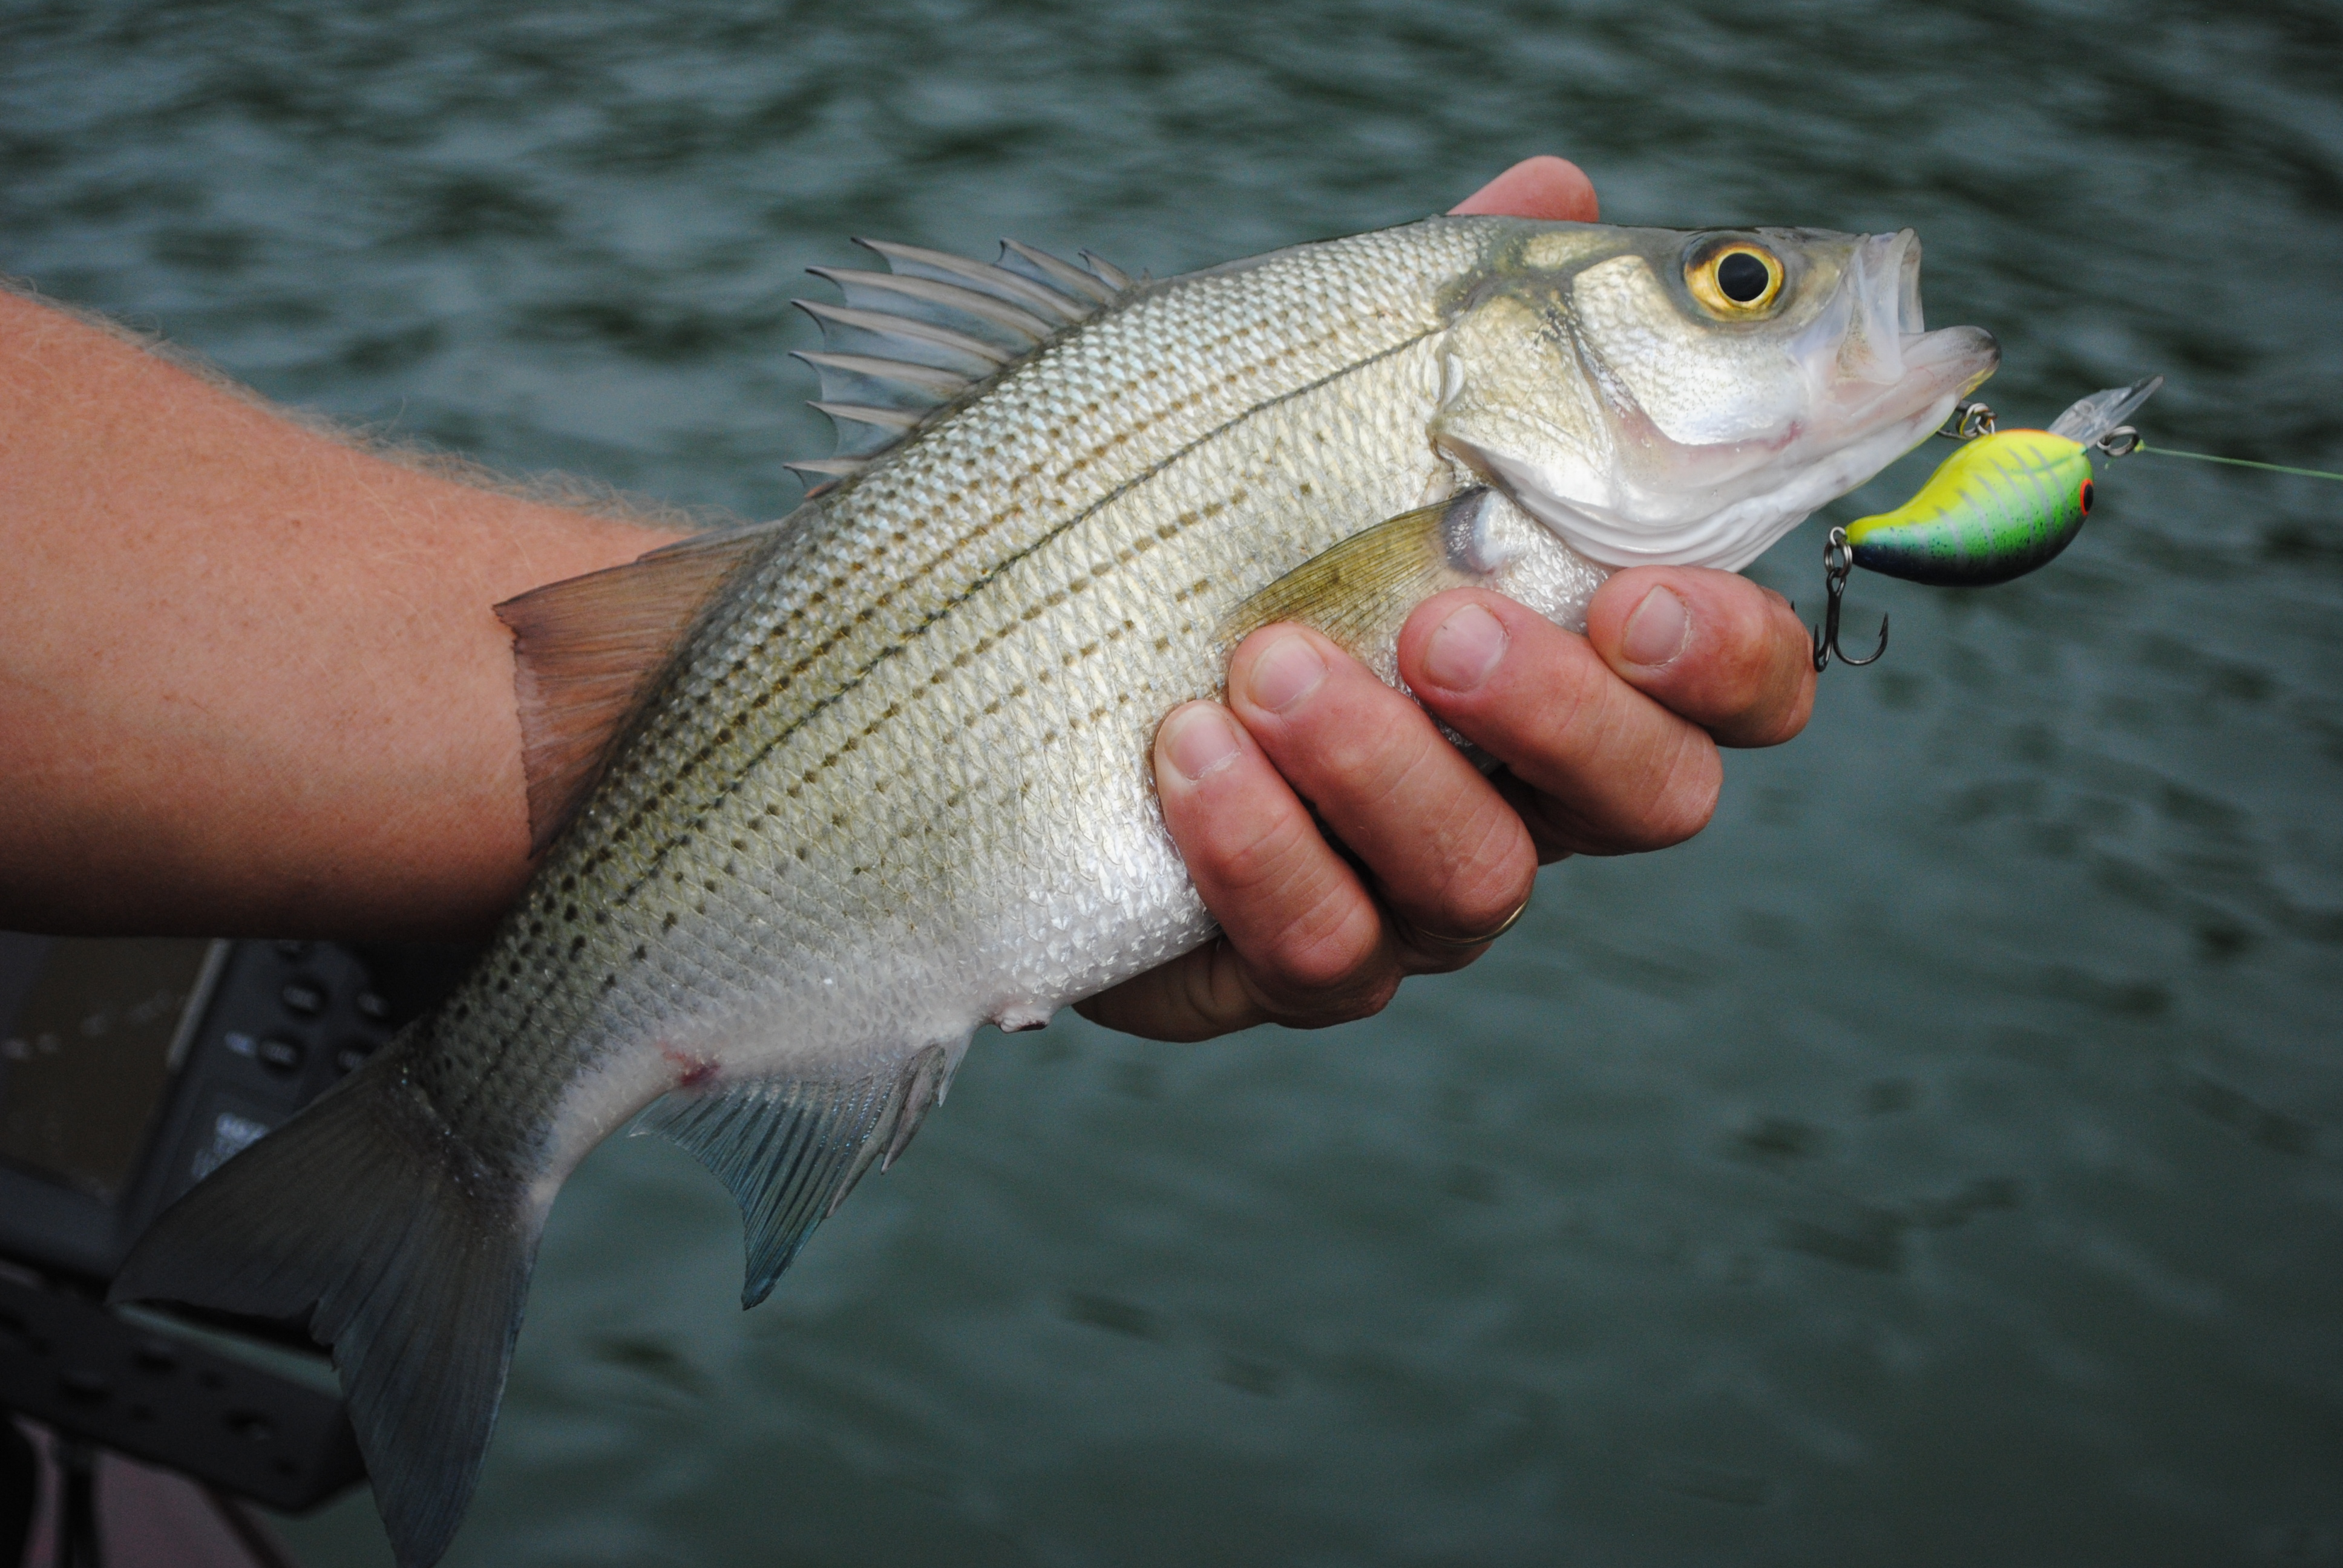 While bass remain the major draw for Wheeler Lake fishing, the lake features excellent fishing that can be as good or even better for white bass, catfish, crappie, and bream.